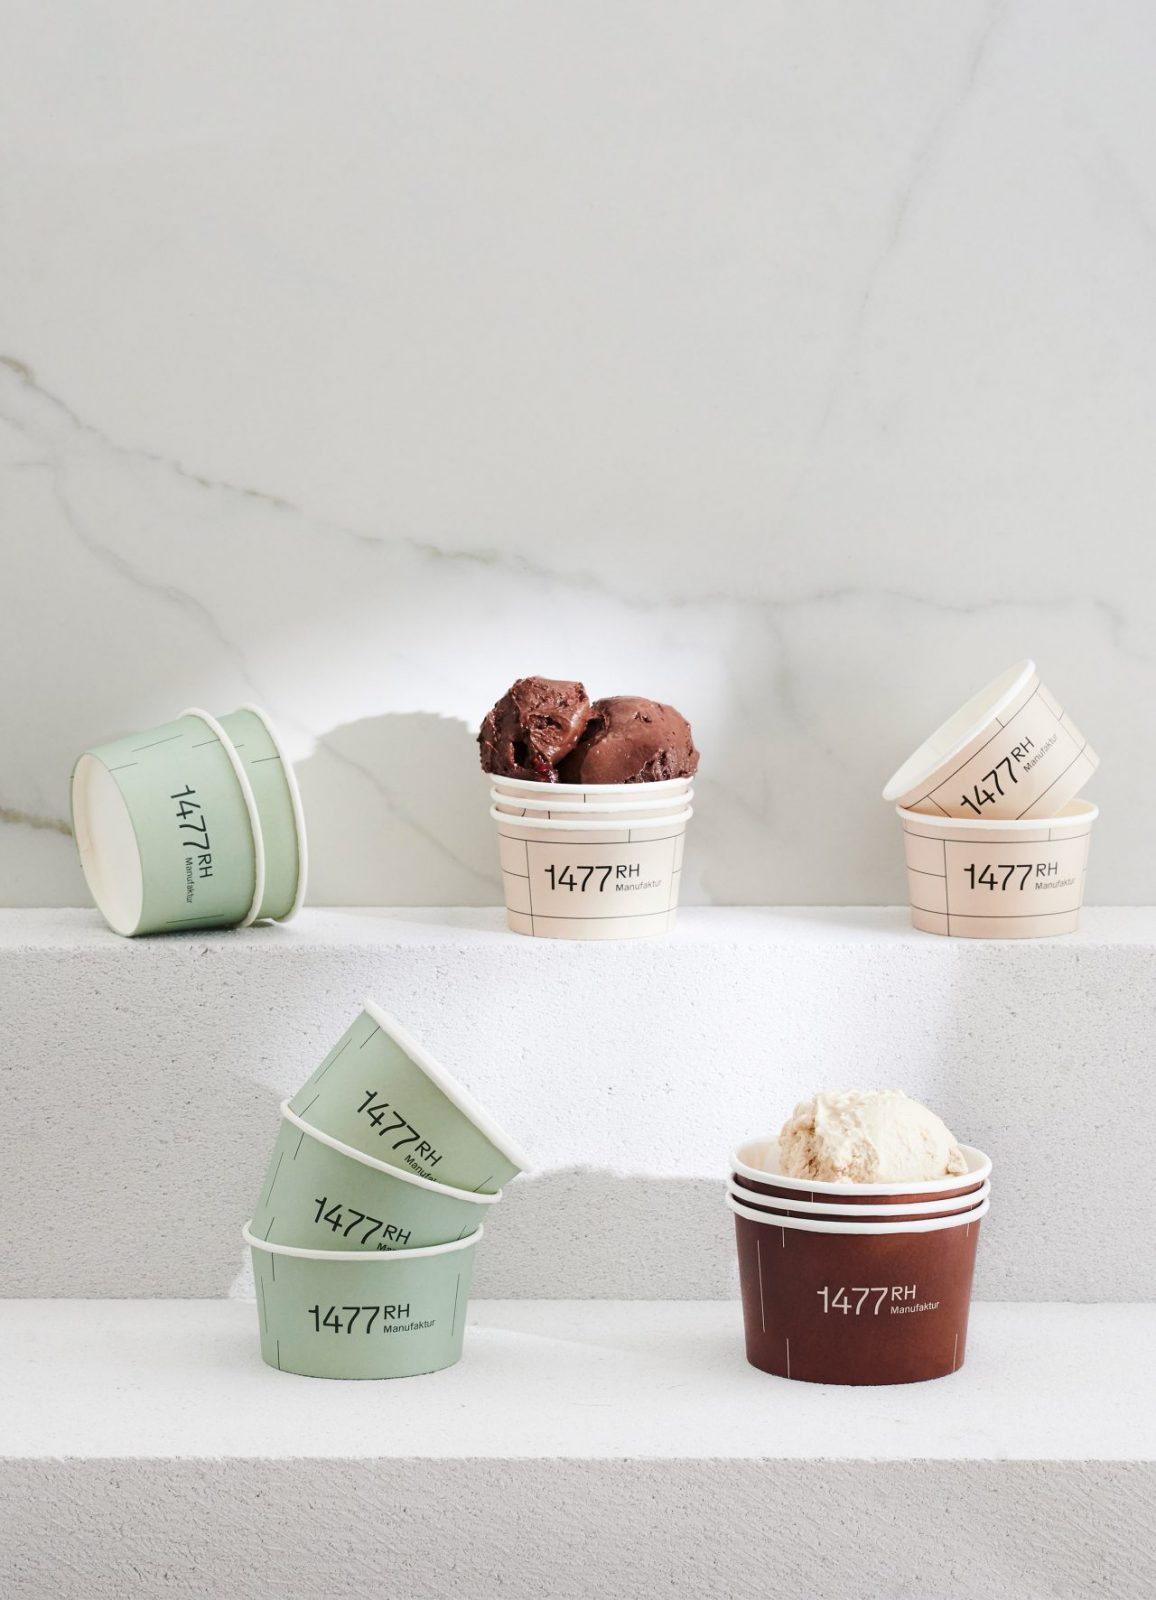 1477RH Delicatessen Visual Identity by Saskia Schmidt Is Inspired By Its Unique Architecture